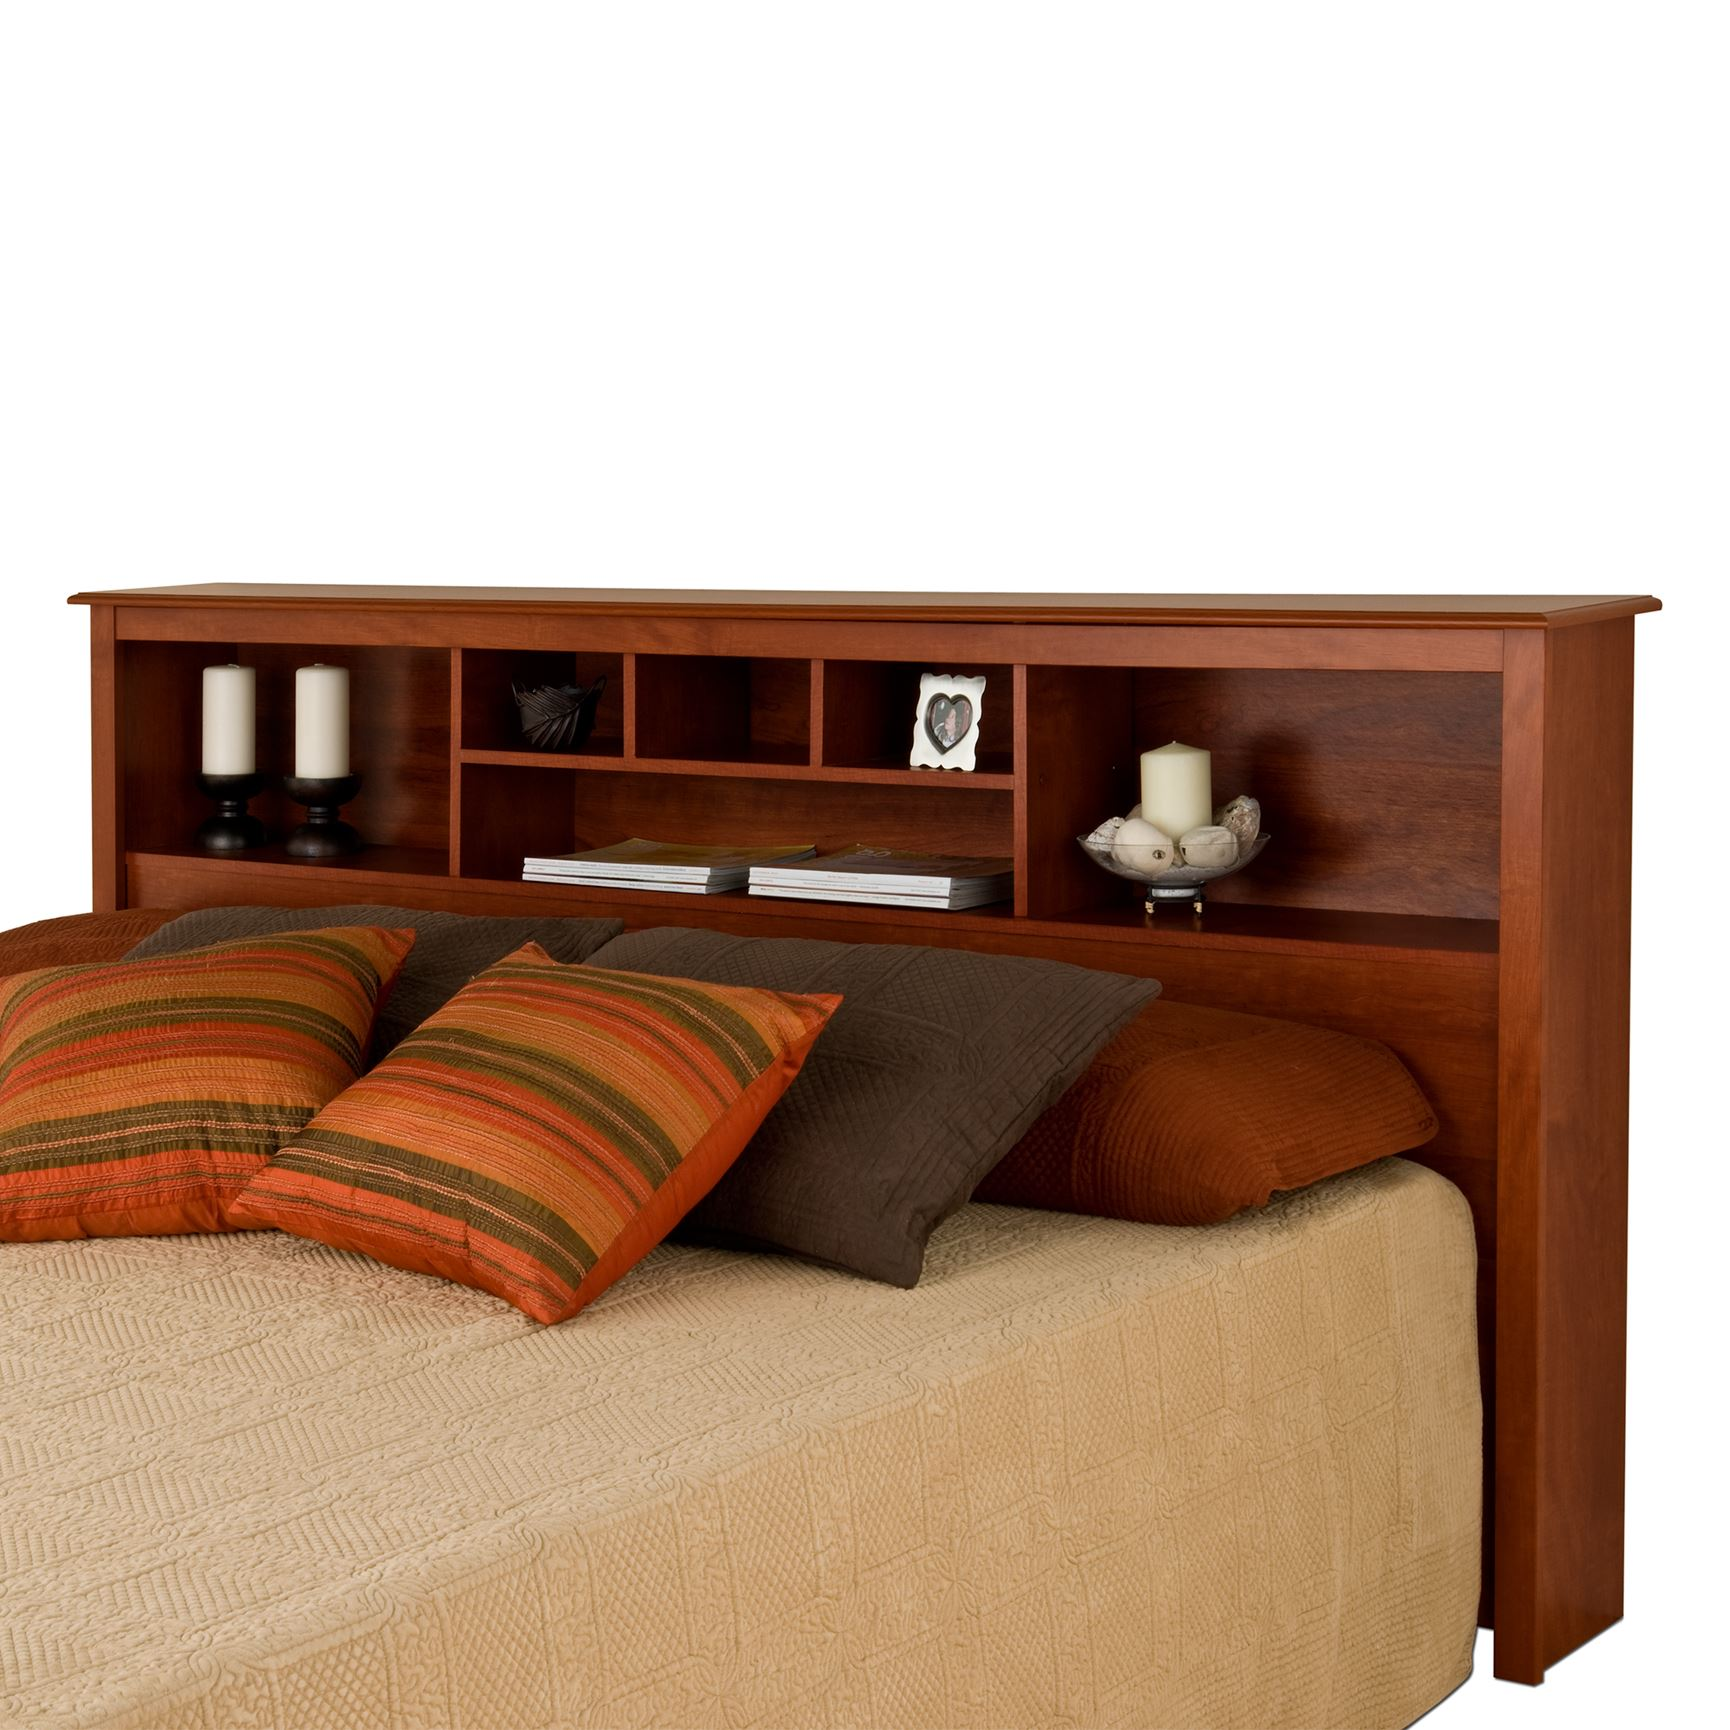 Monterey Cherry King Bookcase Headboard, CHERRY